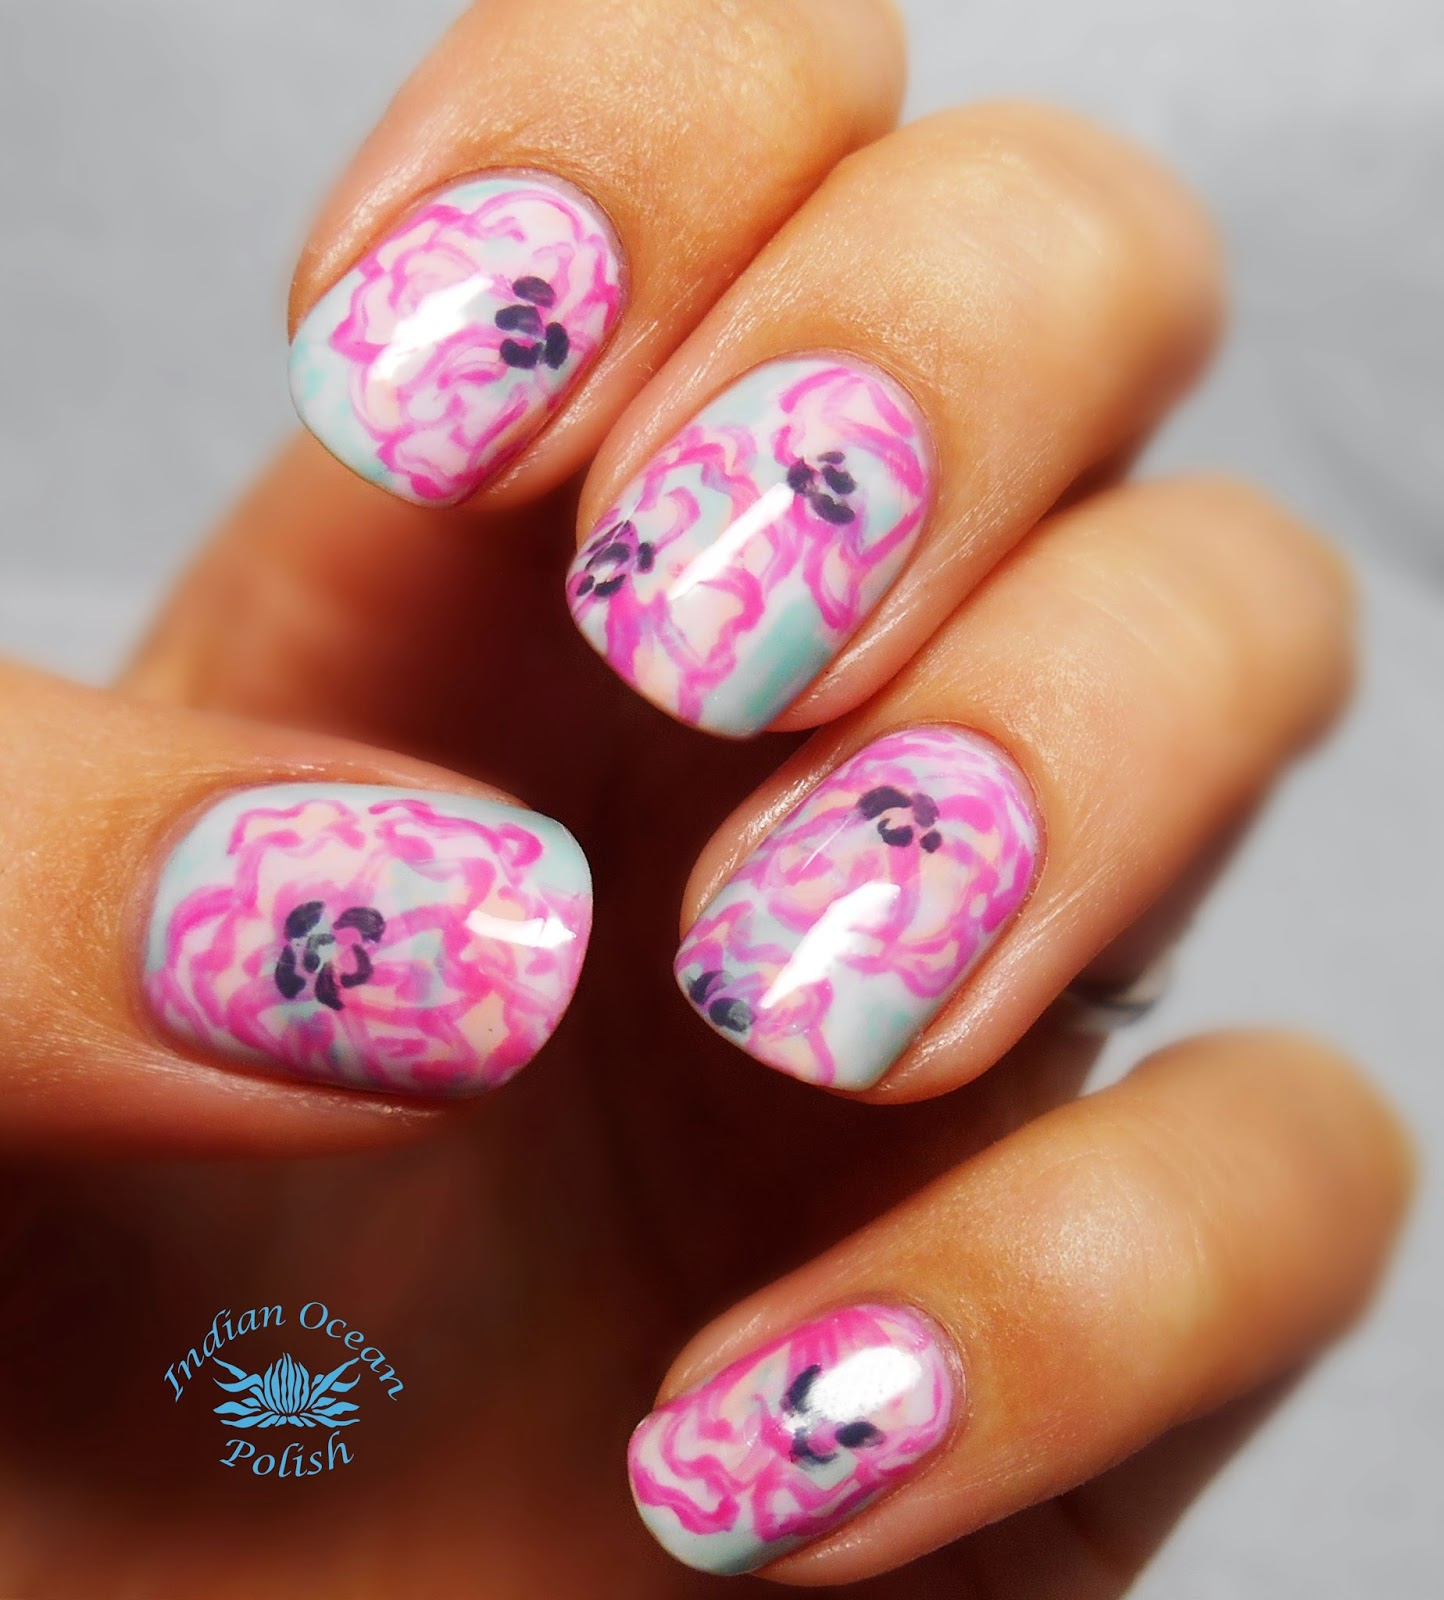 Indian Ocean Polish: Lilly Pulitzer Floral Nails